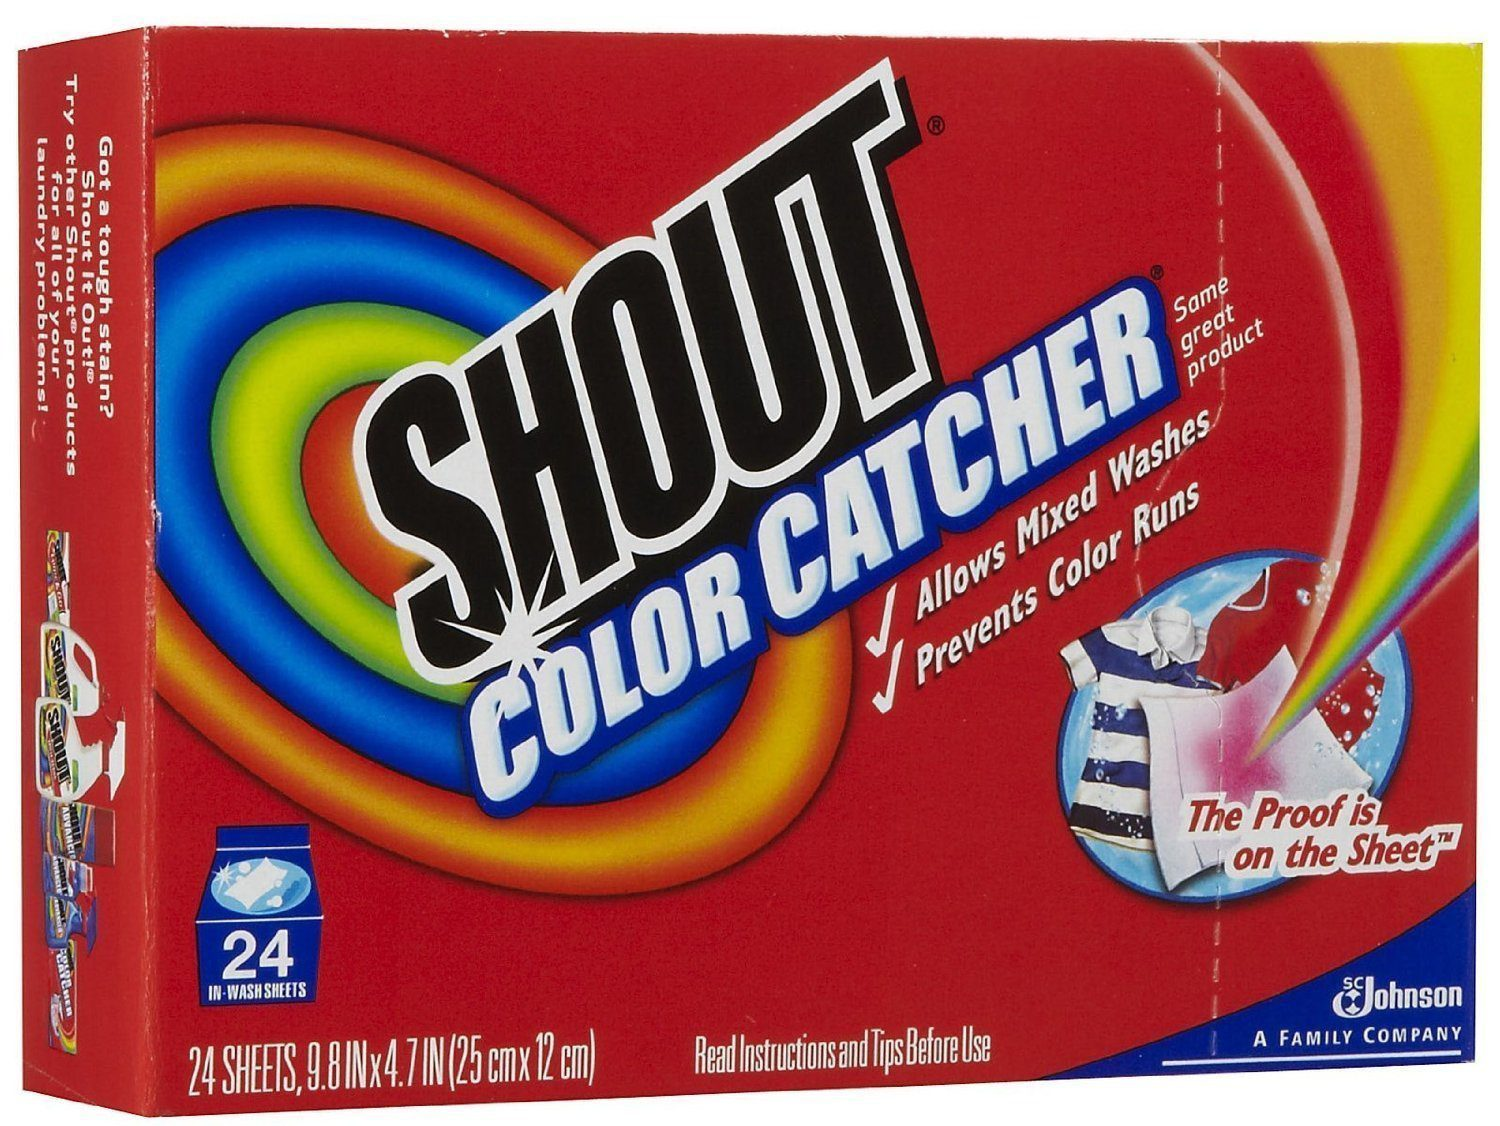 Shout Color Catcher dye-trapping